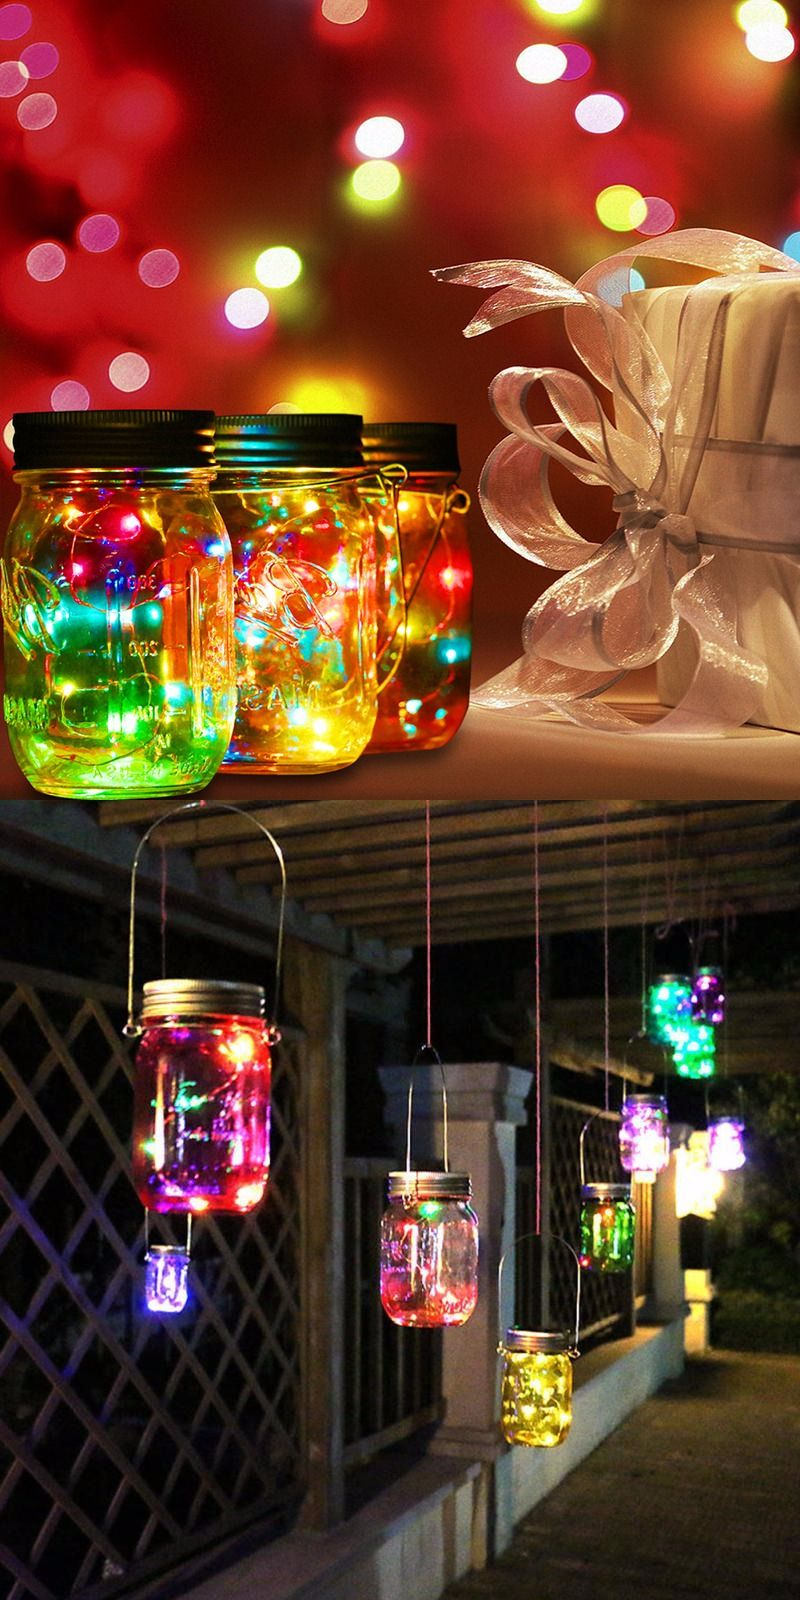 30 Christmas Lights Decoration With Mason Jars Magment Decorating With Christmas Lights Colored Christmas Lights Christmas Jars